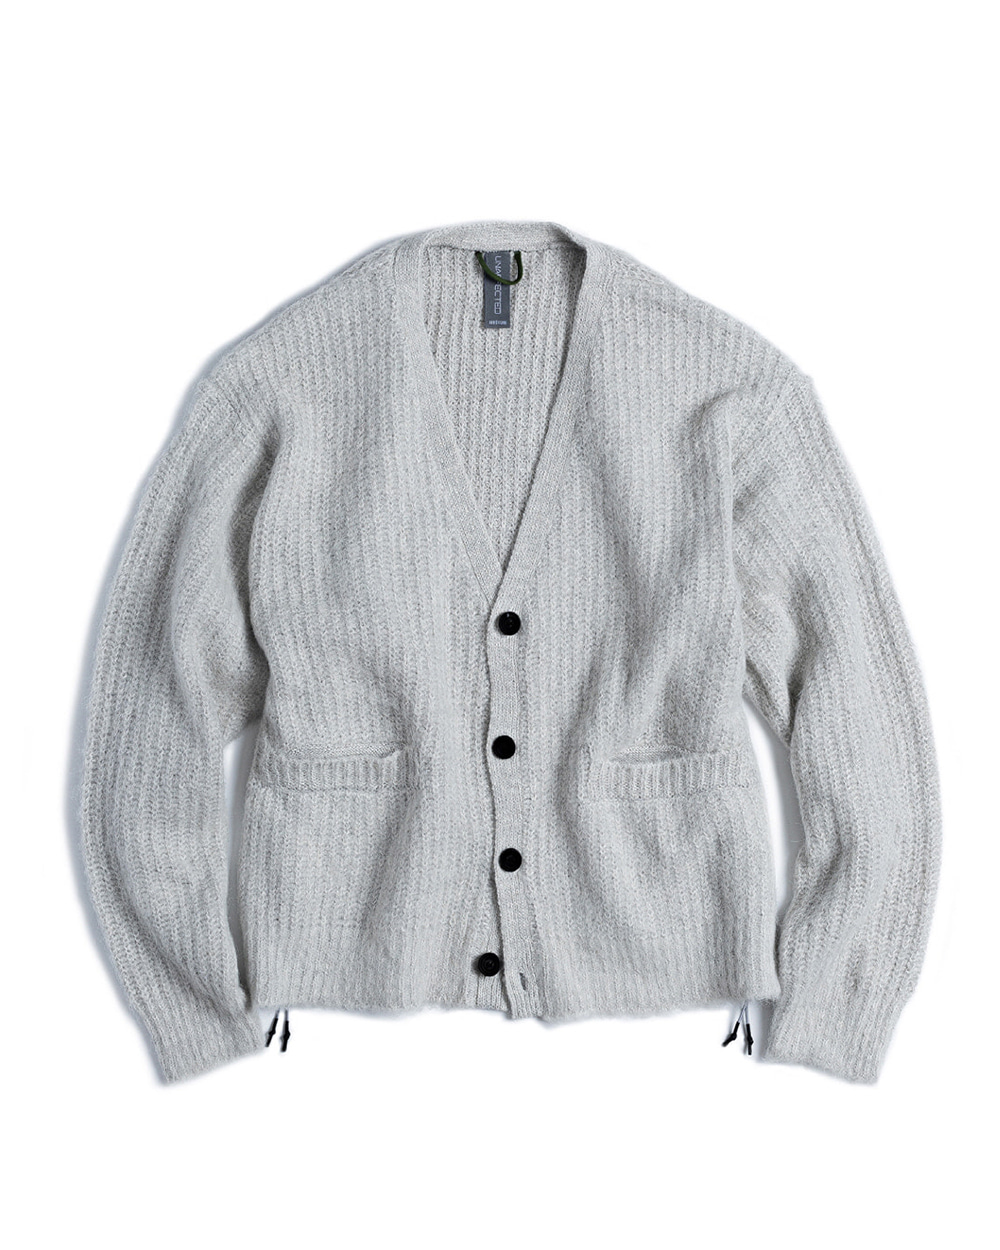 언어펙티드 OVERSIZED FLUFFY CARDIGAN (Light Grey)